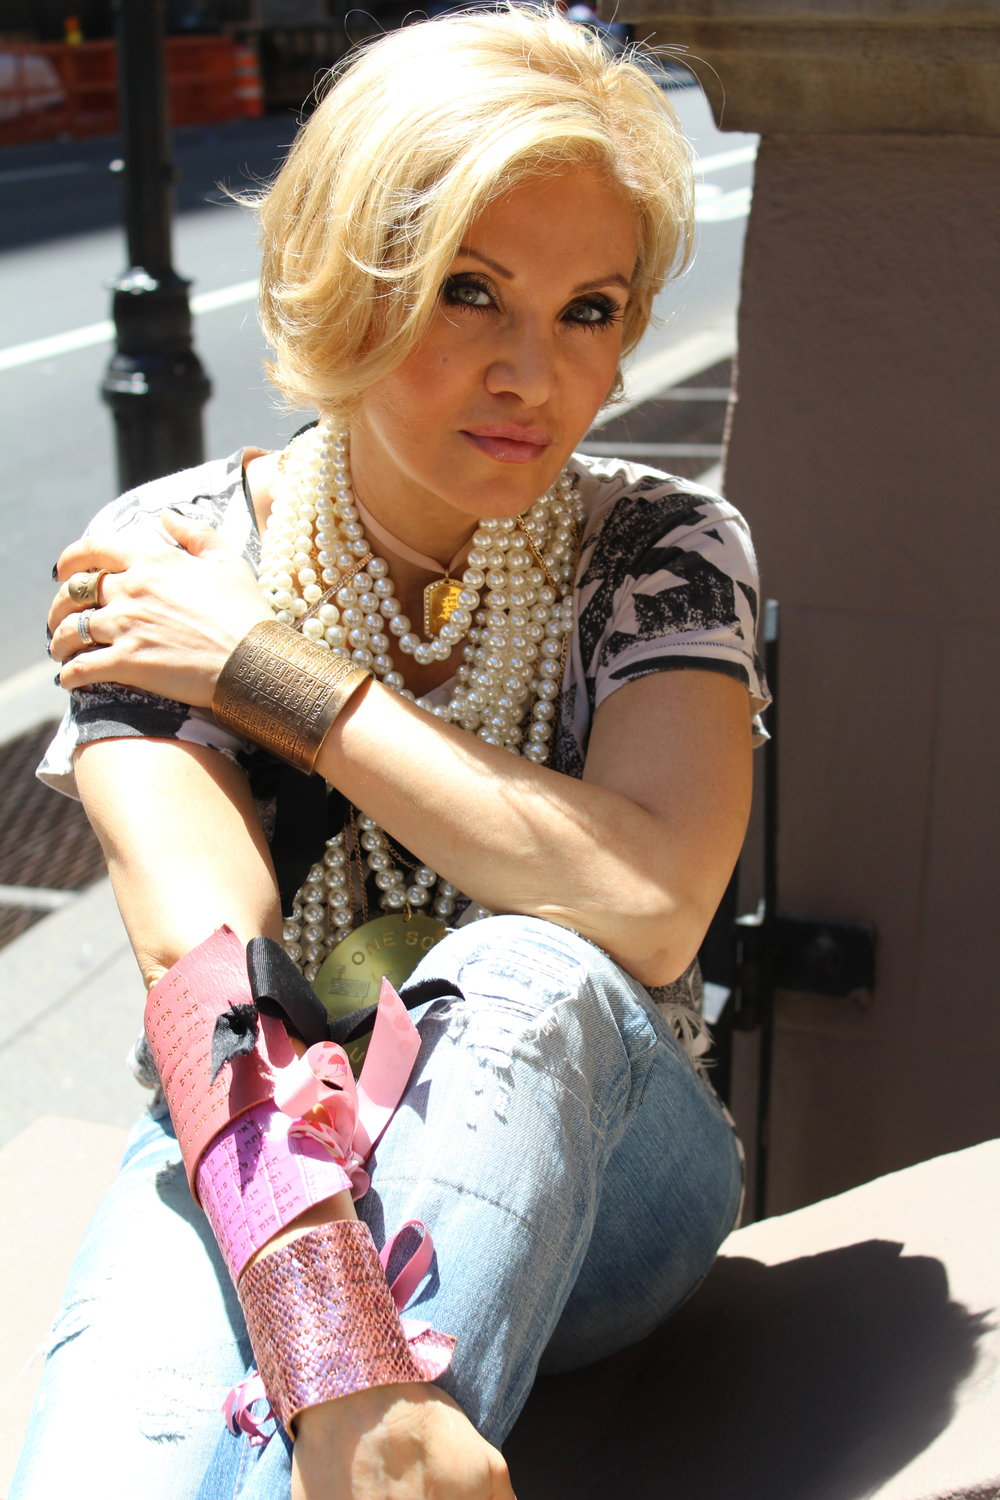 Tony nominated actress, singer and songwriter from New York City, Orfeh, wearing our pink cuffs